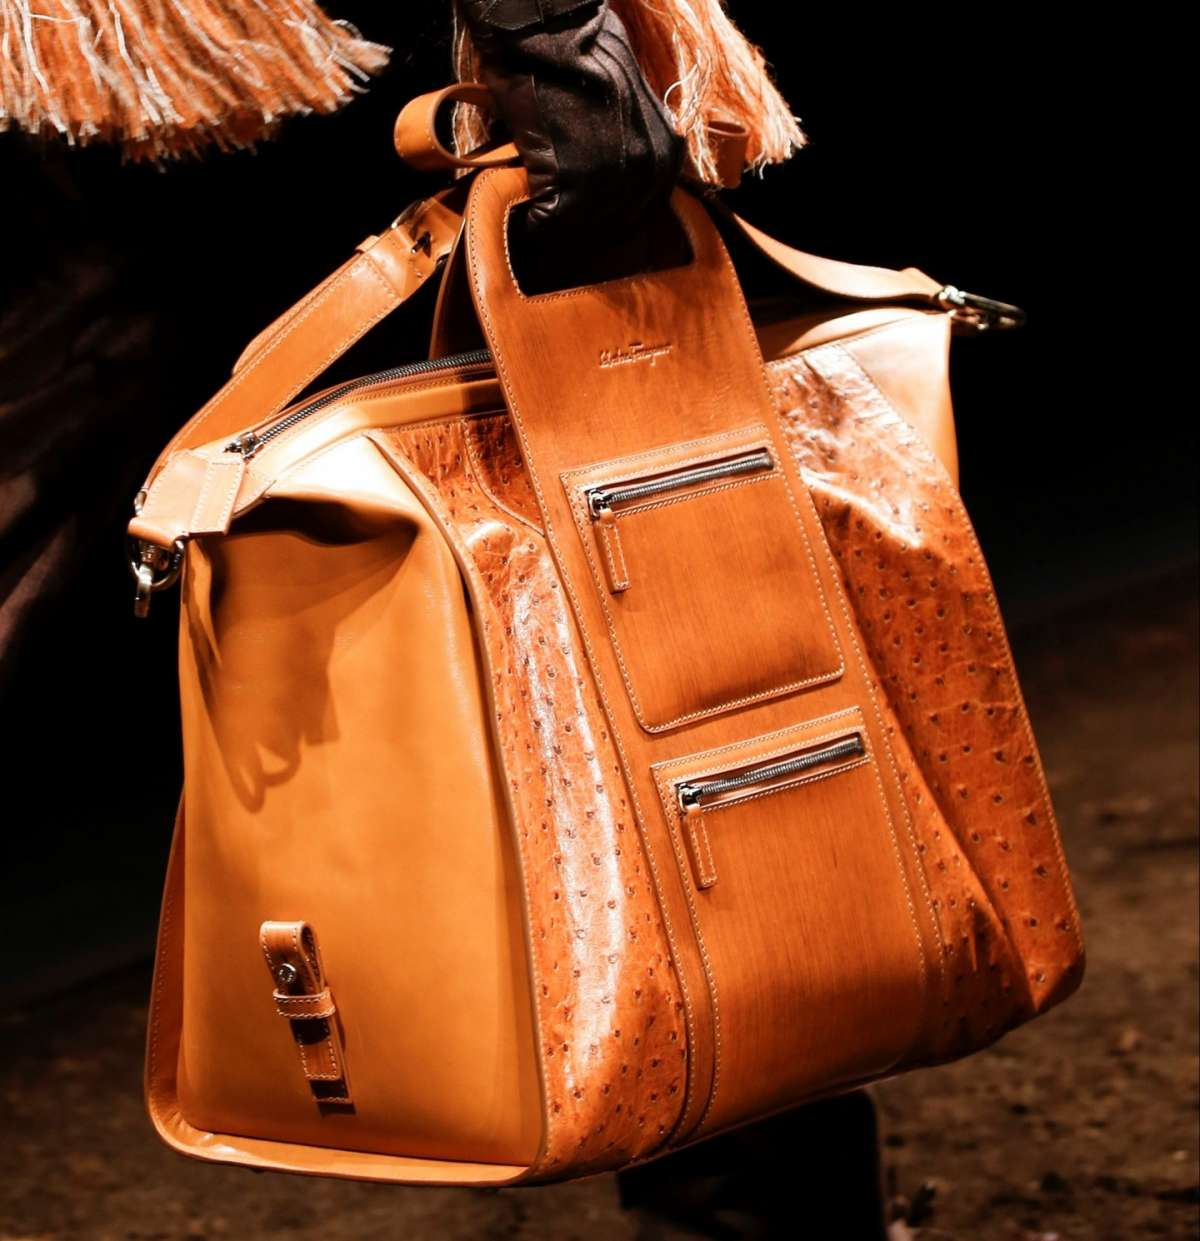 a44a2db037 Borse in pelle uomo Autunno Inverno 2015-2016 (Foto) | Bags Stylosophy